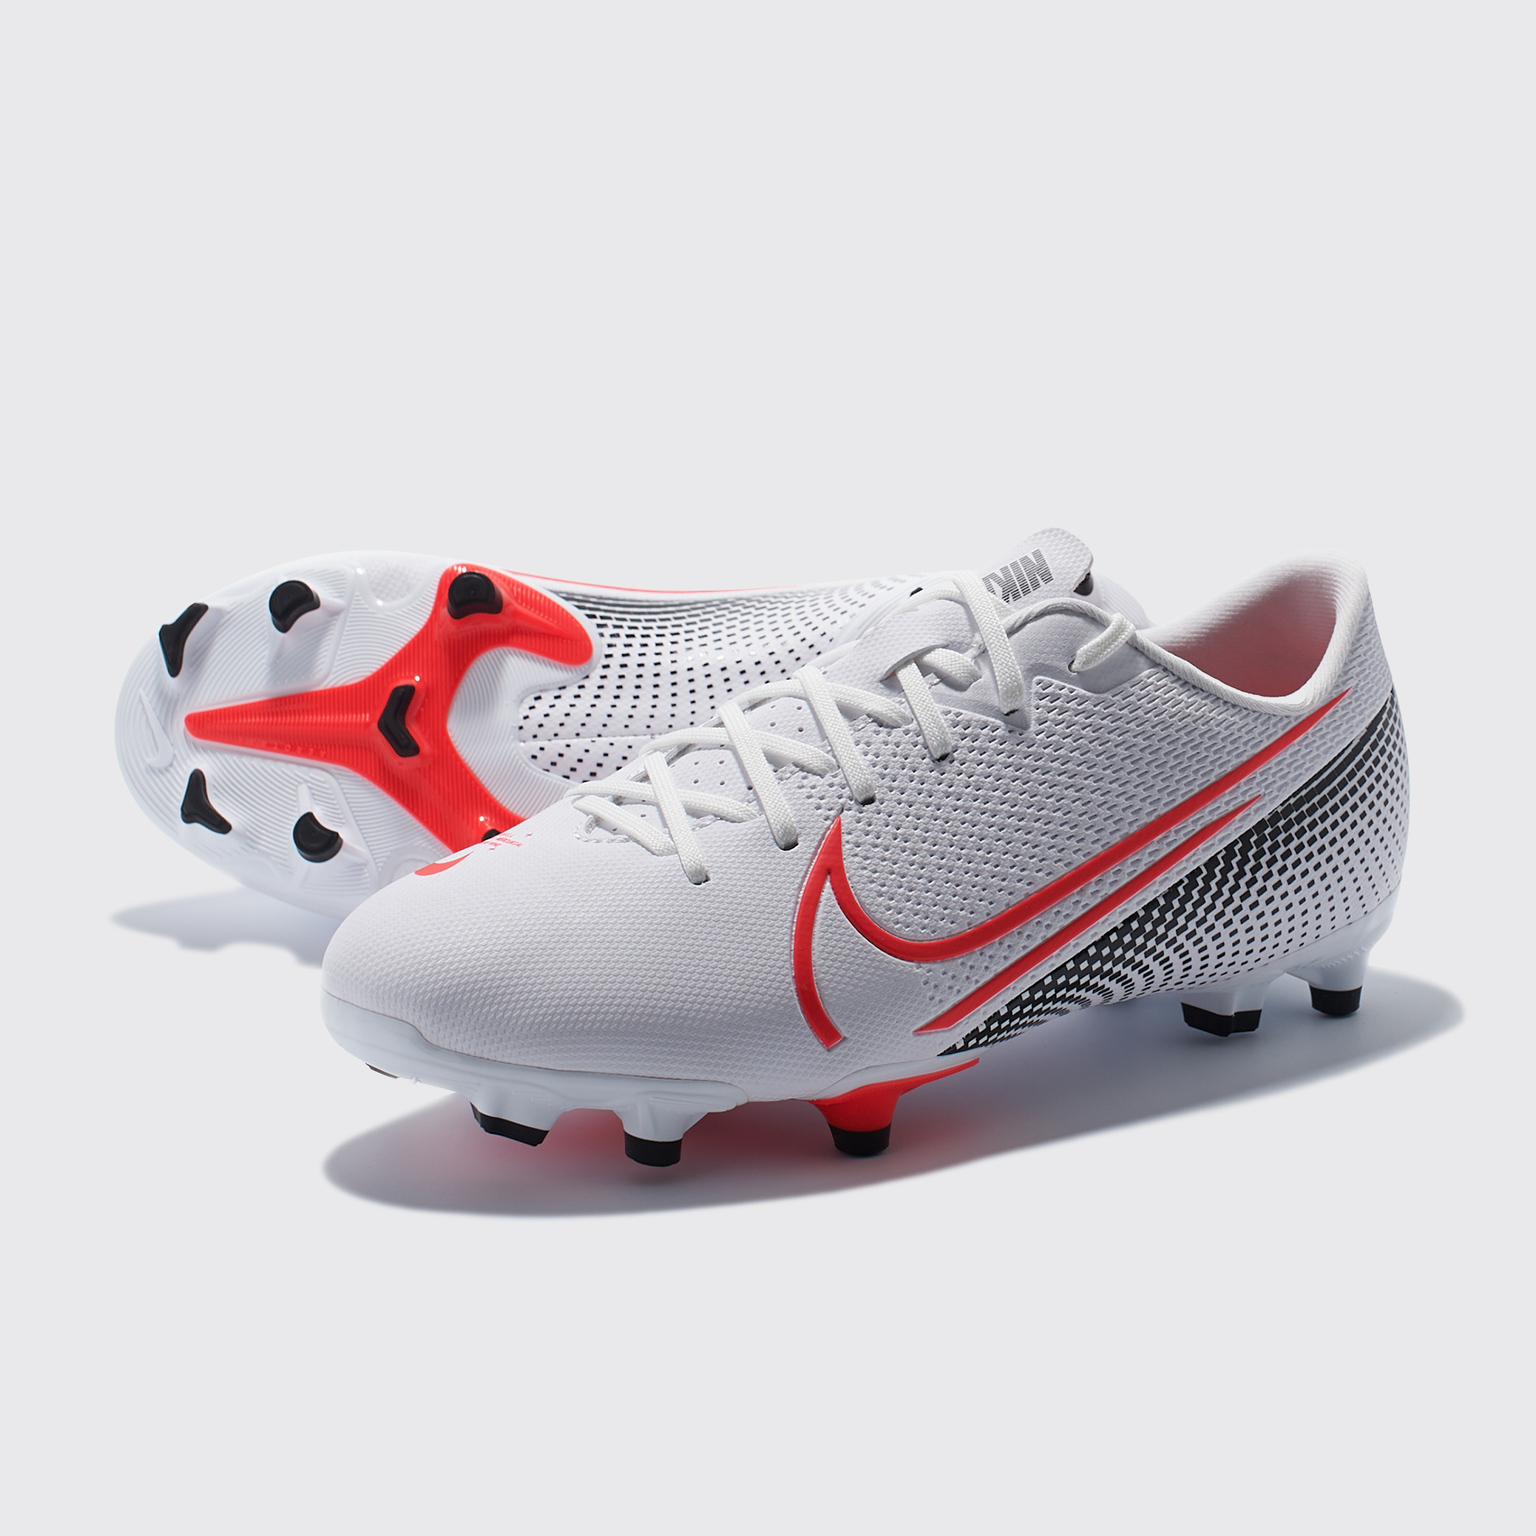 Бутсы детские Nike Vapor 13 Academy FG/MG AT8123-160